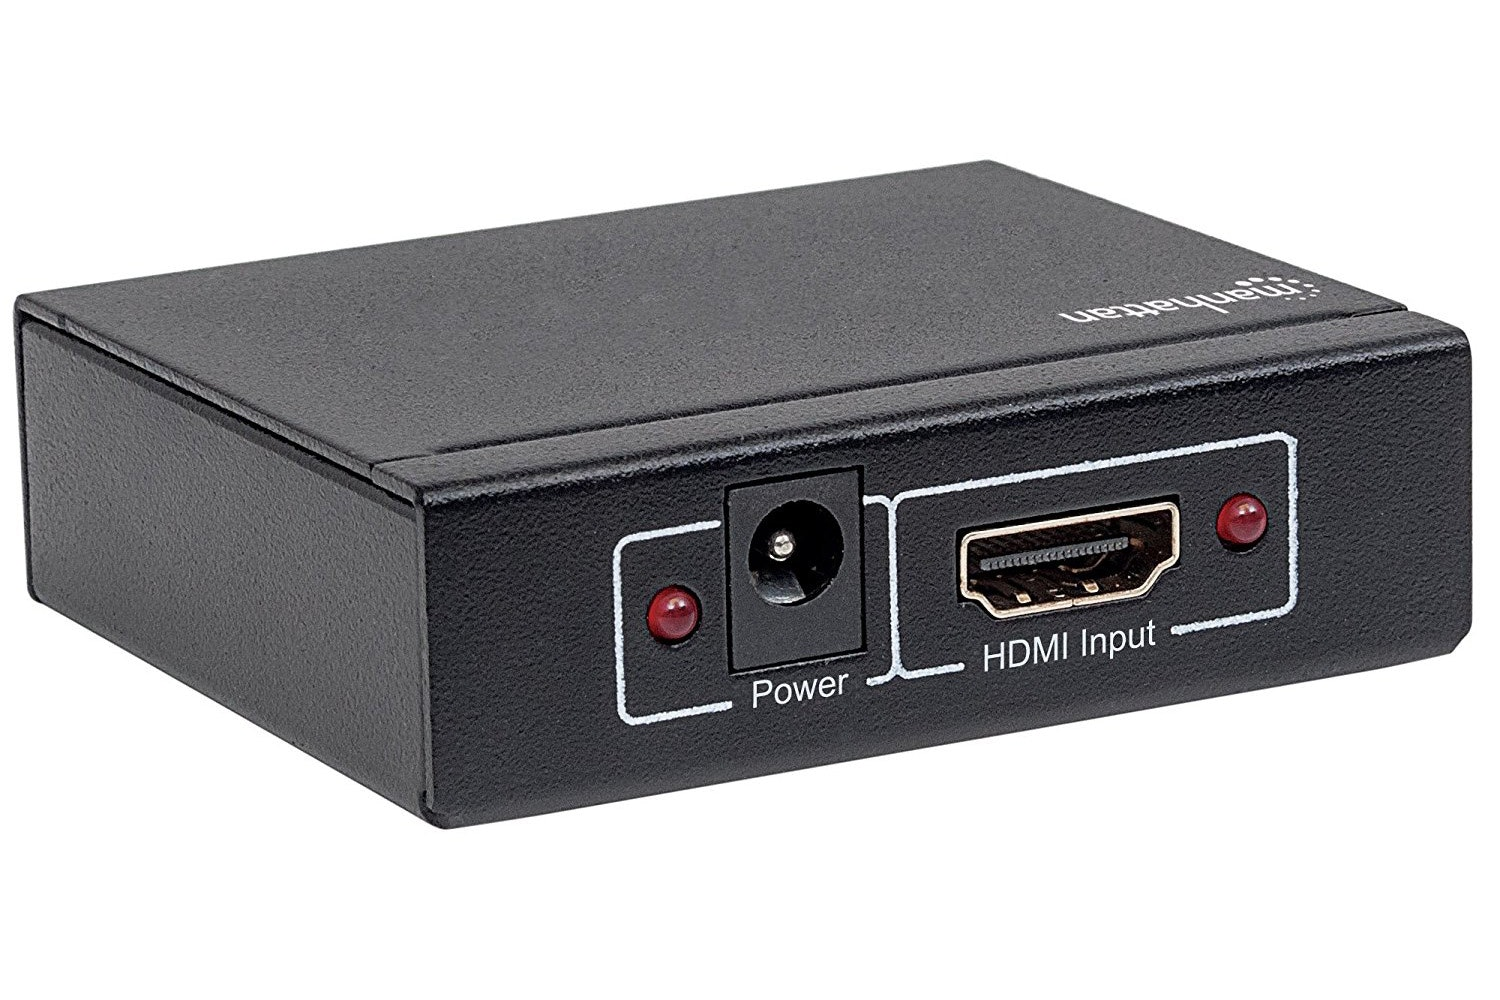 Manhattan 2-Port HDMI Splitter | 207454